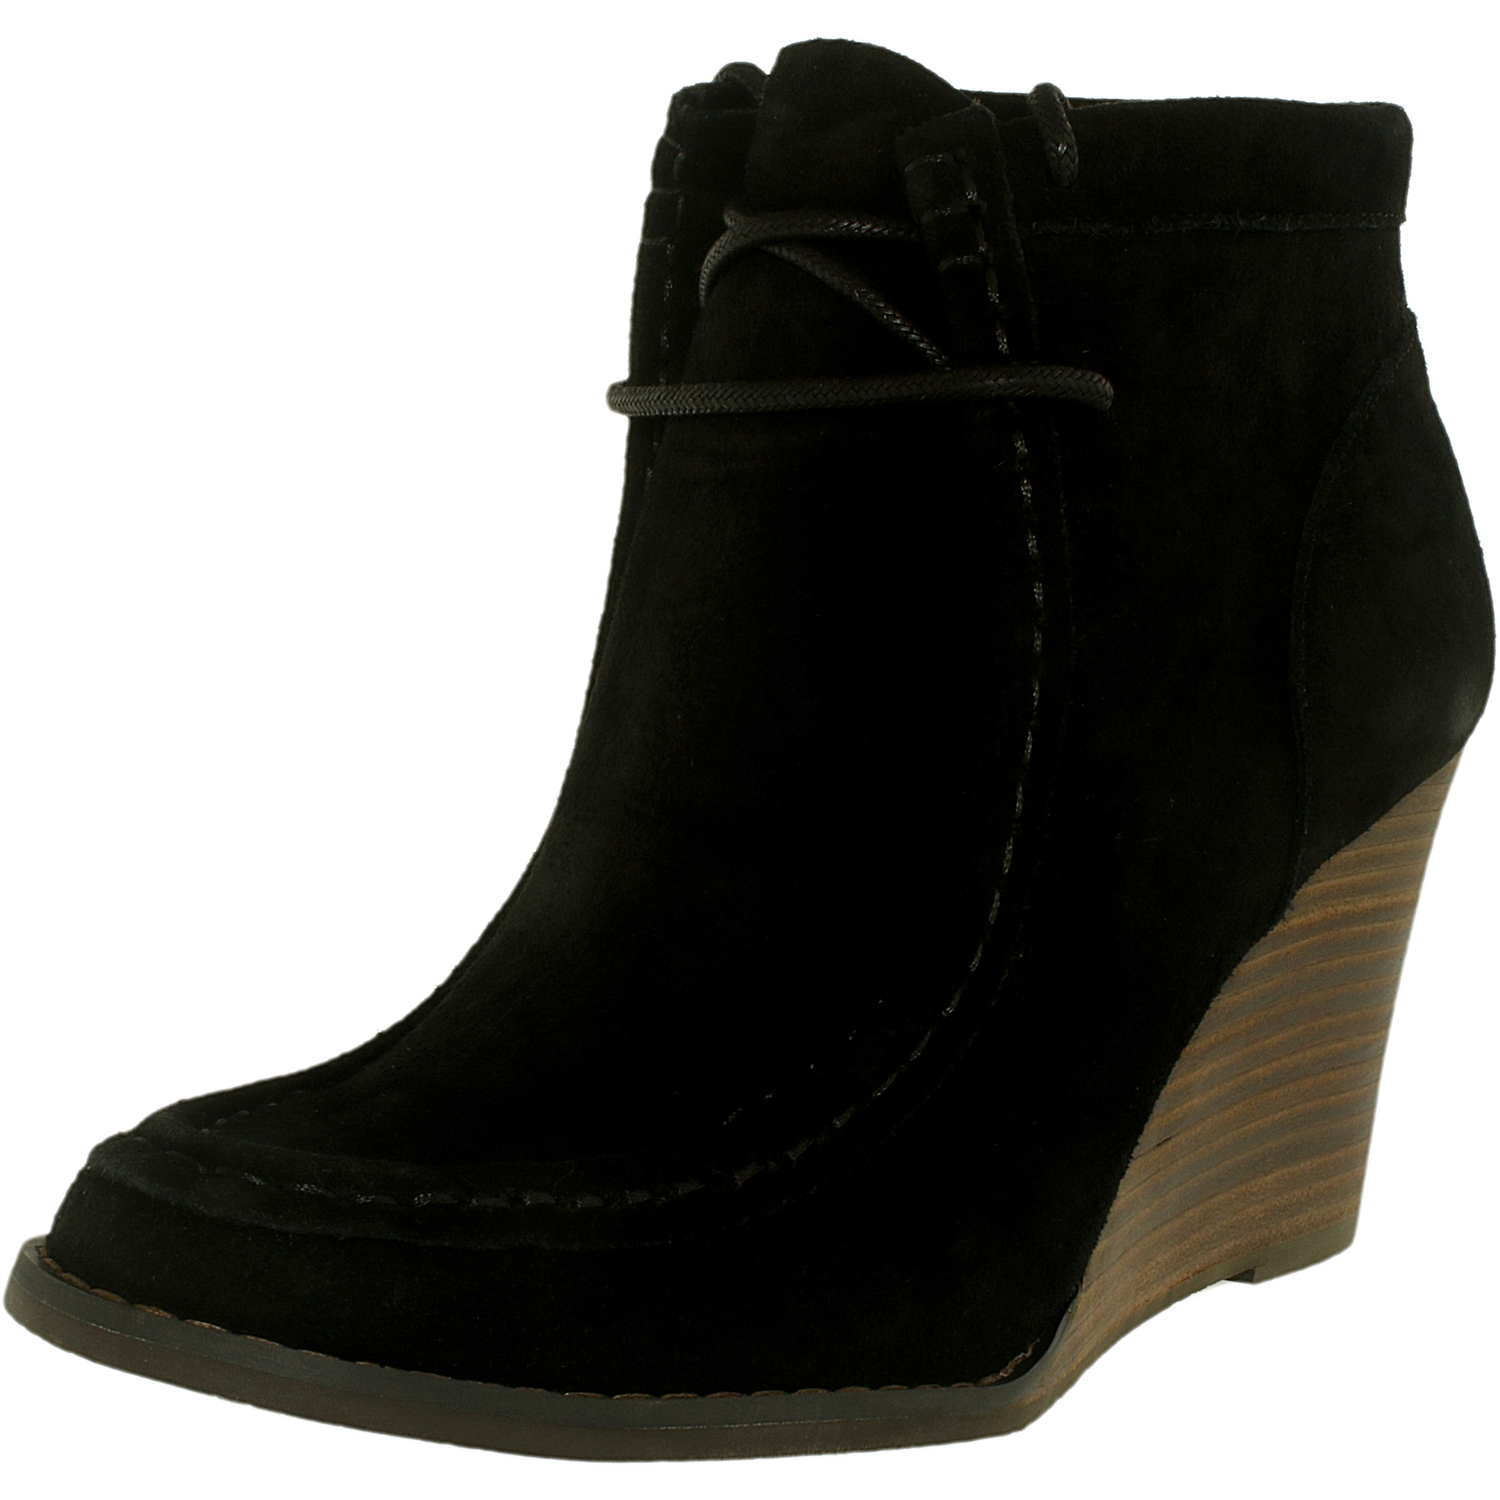 Lucky Women's Ysabel Suede Black Ankle-High Leather Boot - 7.5M